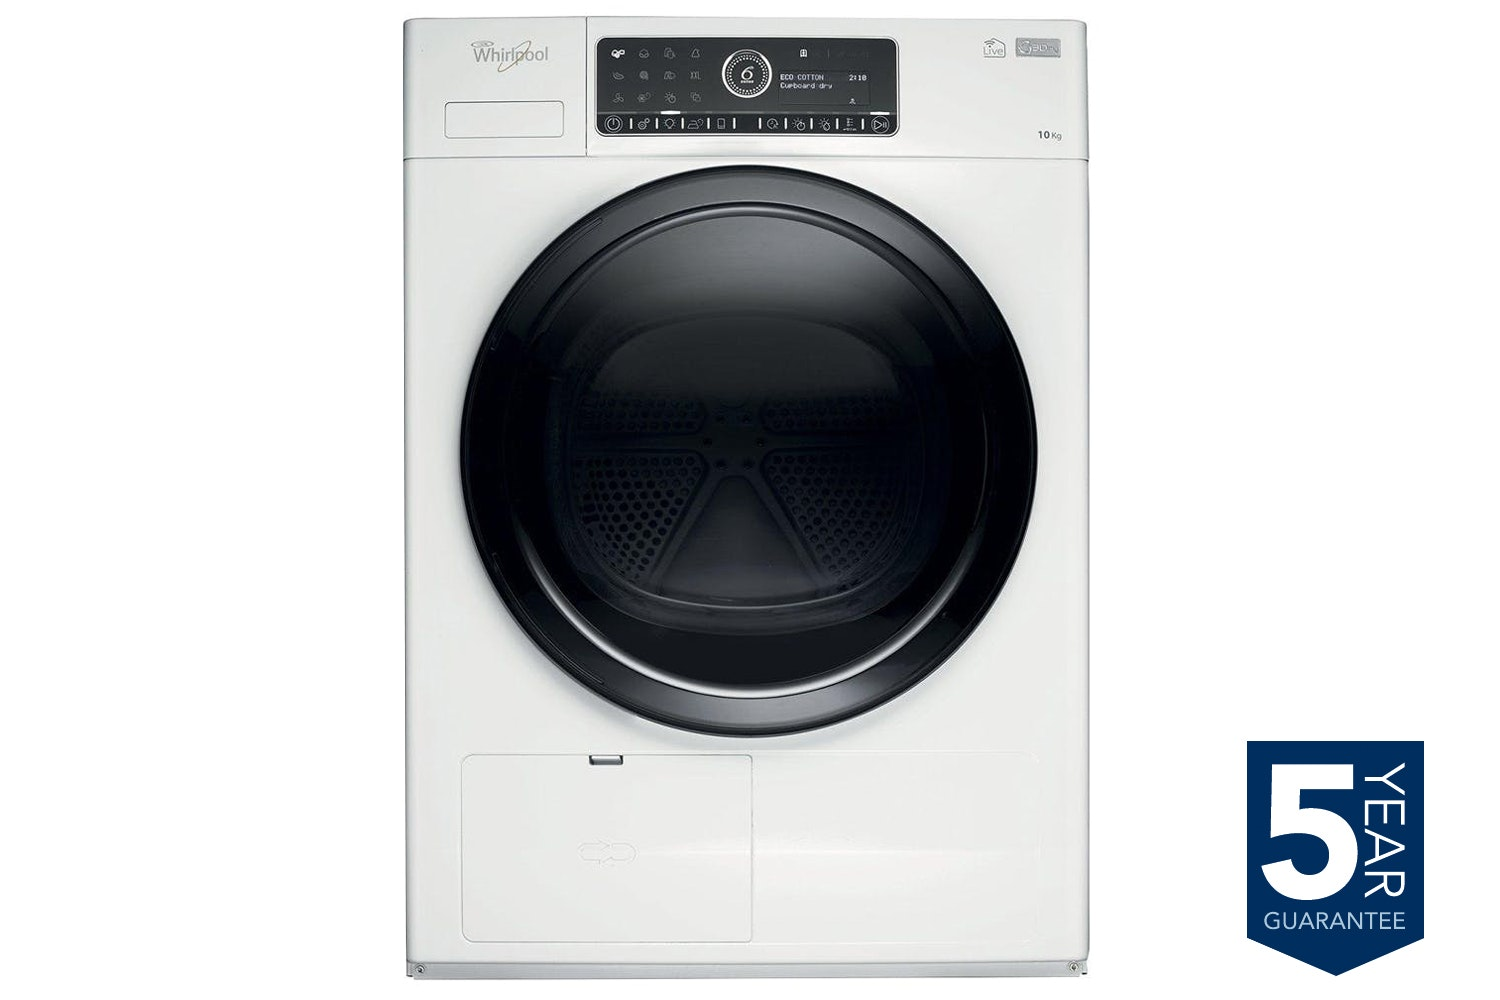 Whirlpool Supreme Care 10kg Condenser Tumble Dryer | HSCX10441